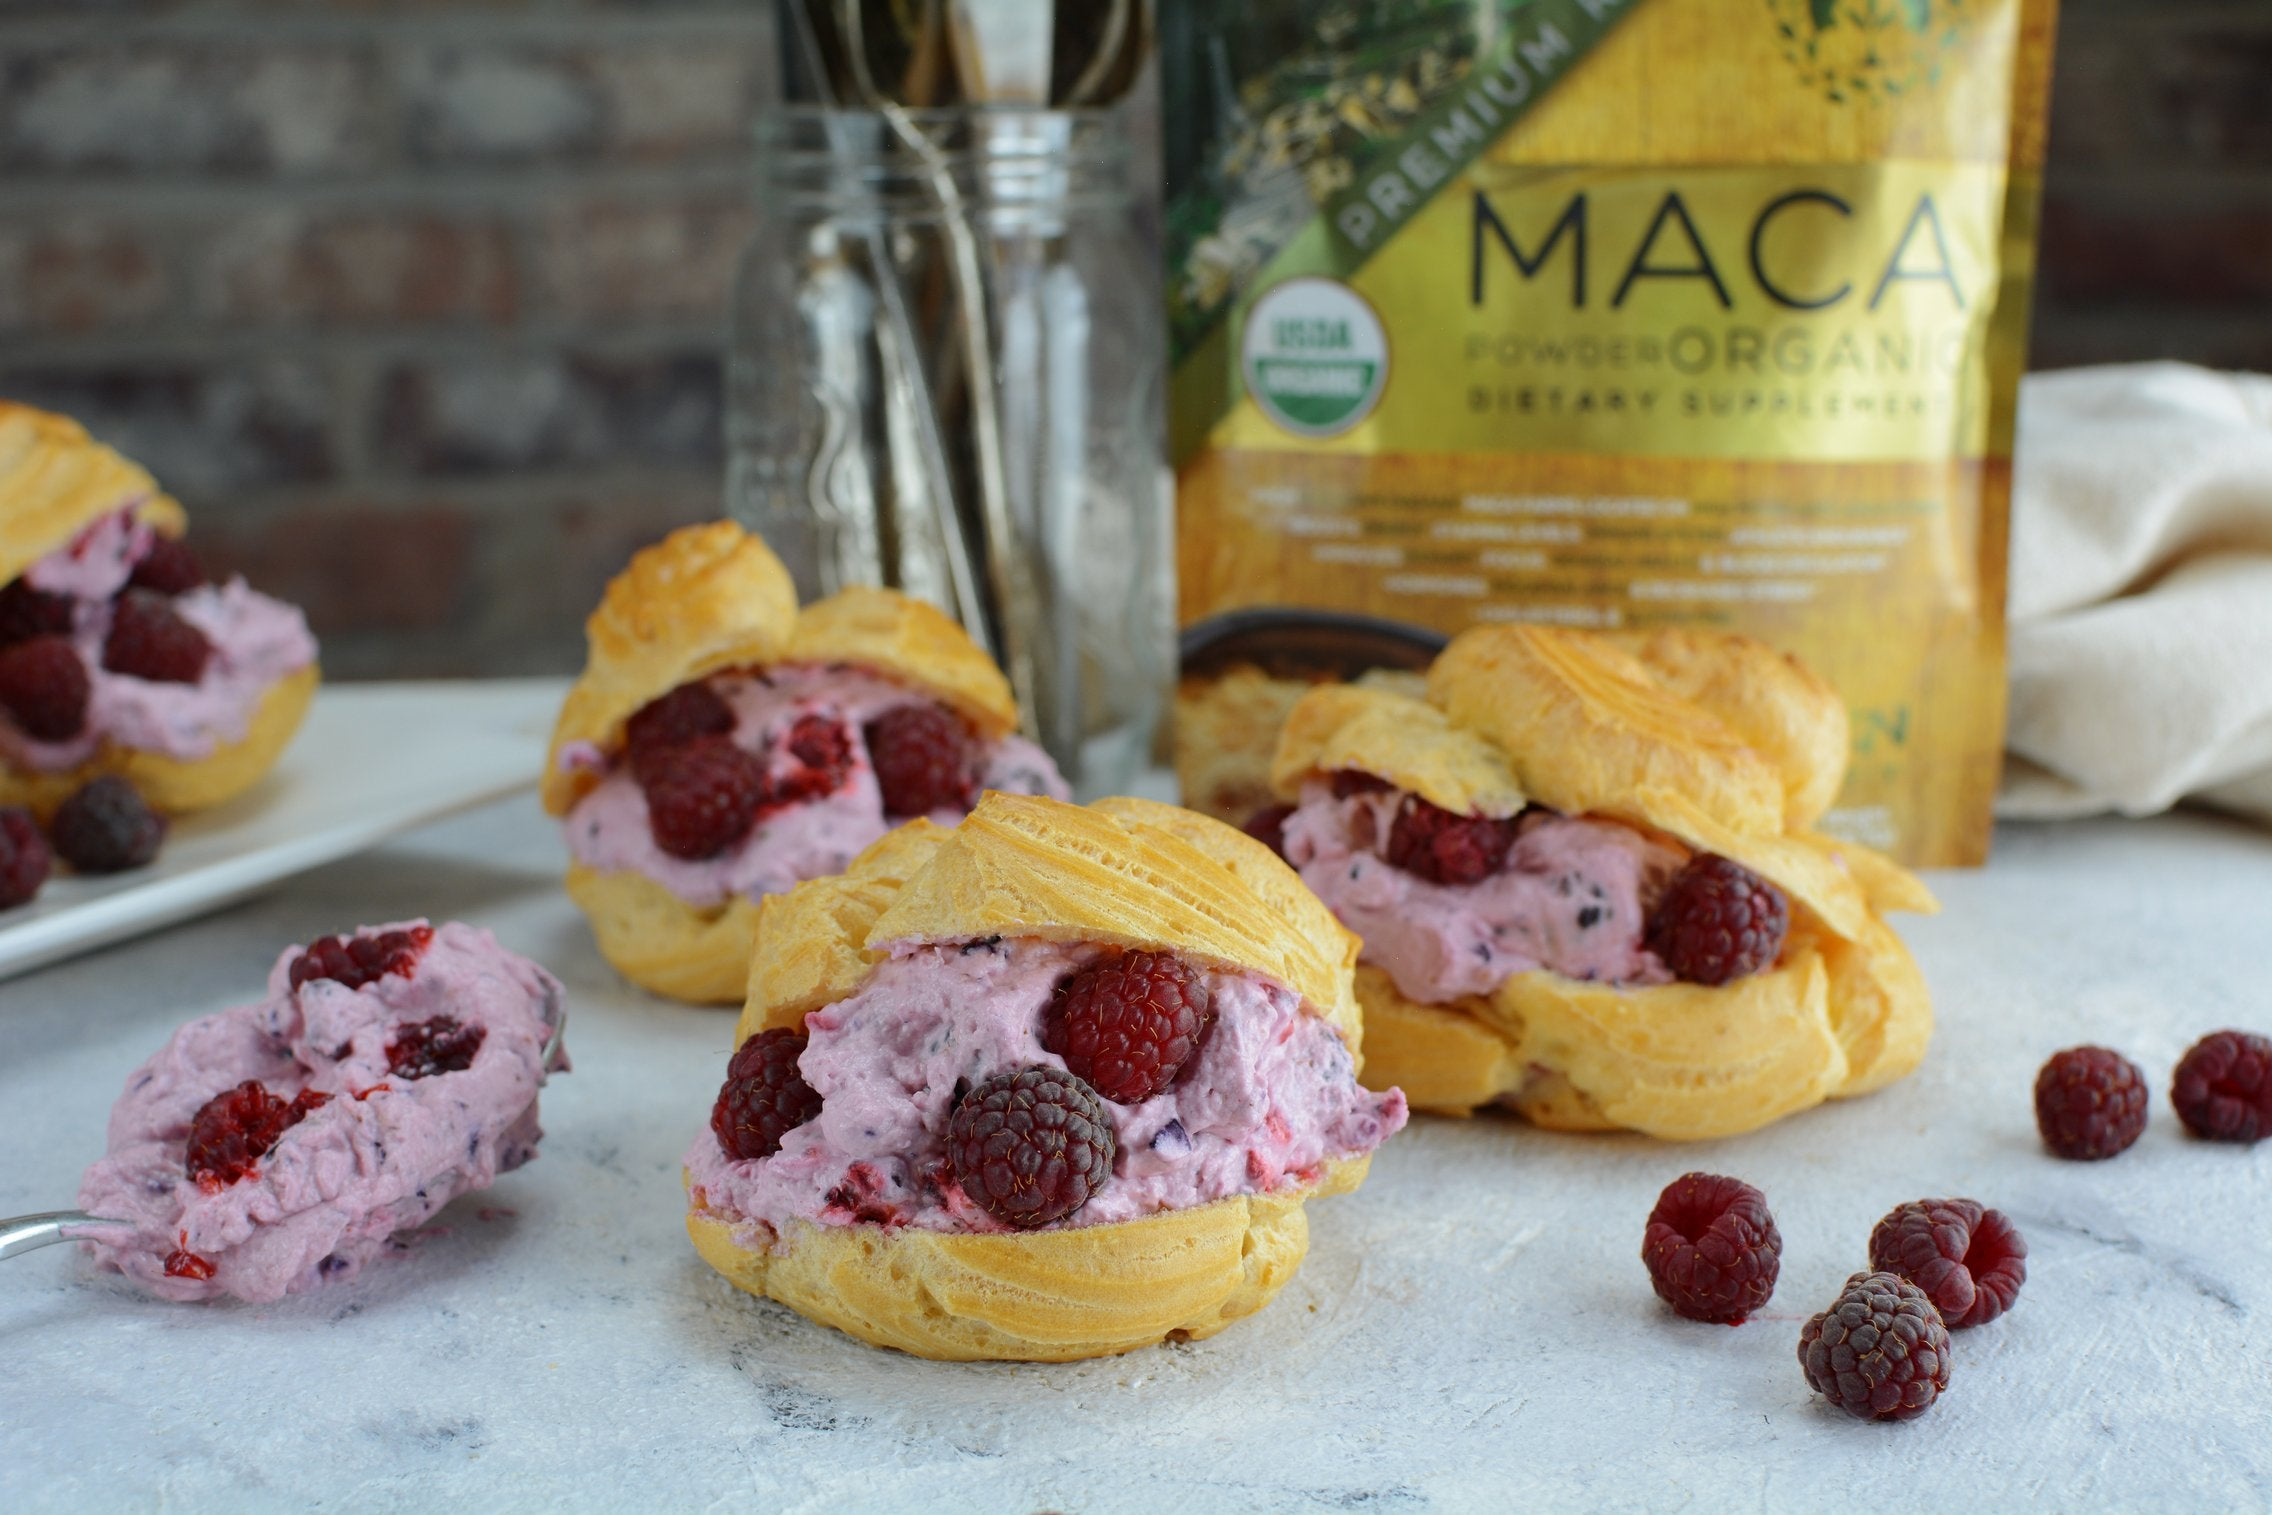 Raspberry and Maca Cream Puffs